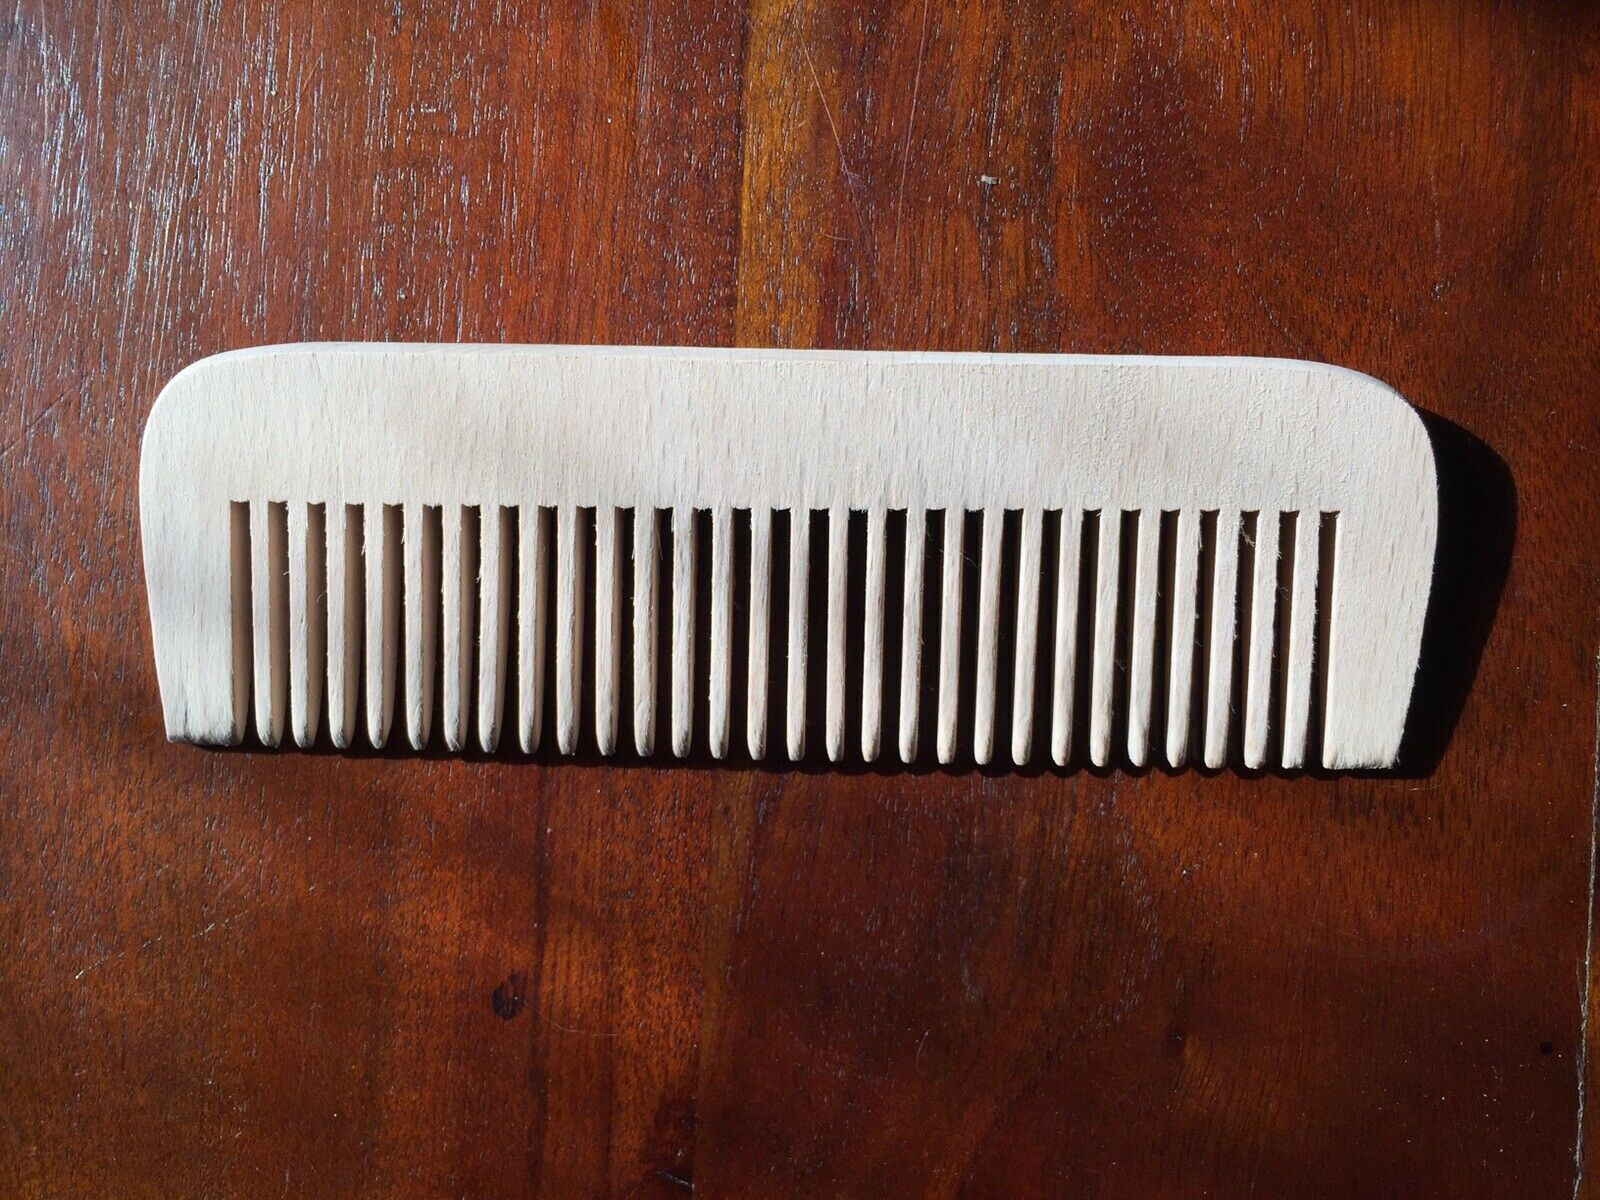 Hipster Beard Comb 6.5 inches wooden